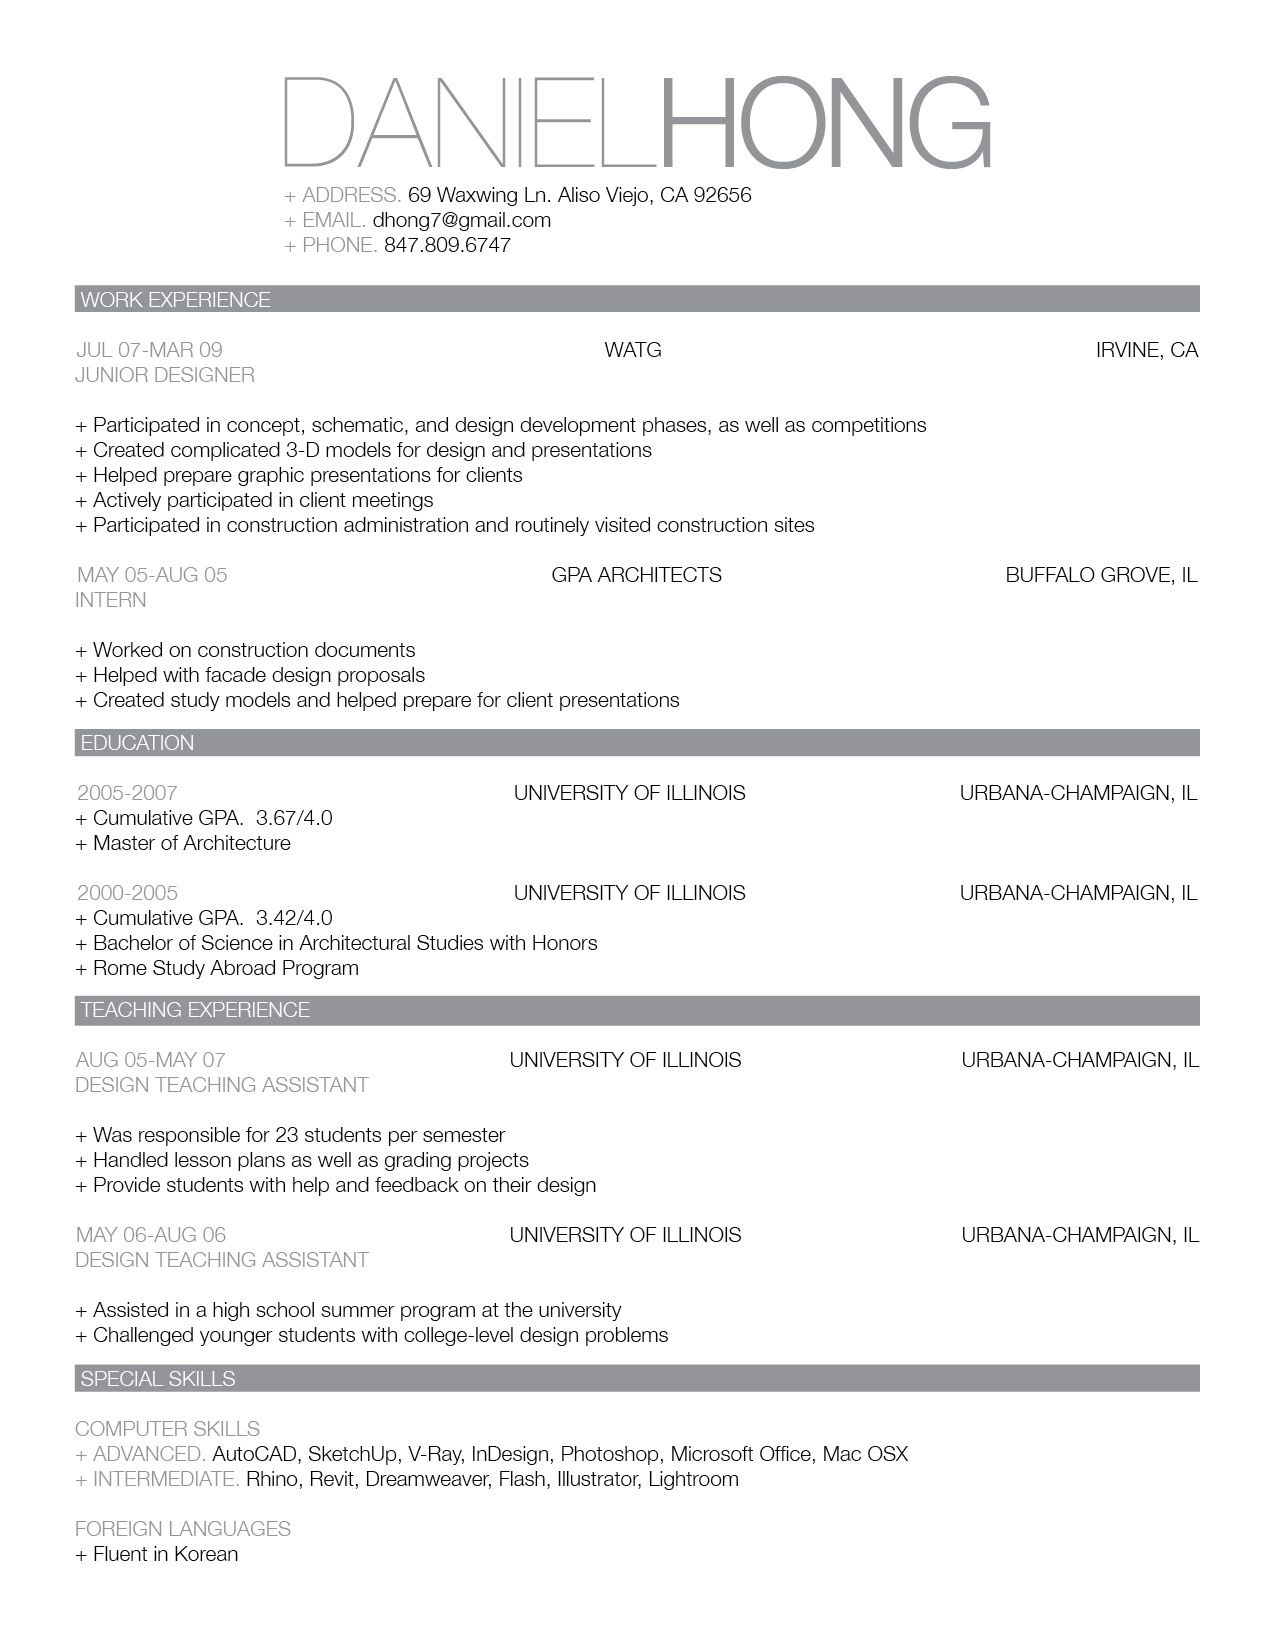 Beau Updated CV And Work Sample. Best Resume TemplateResume ...